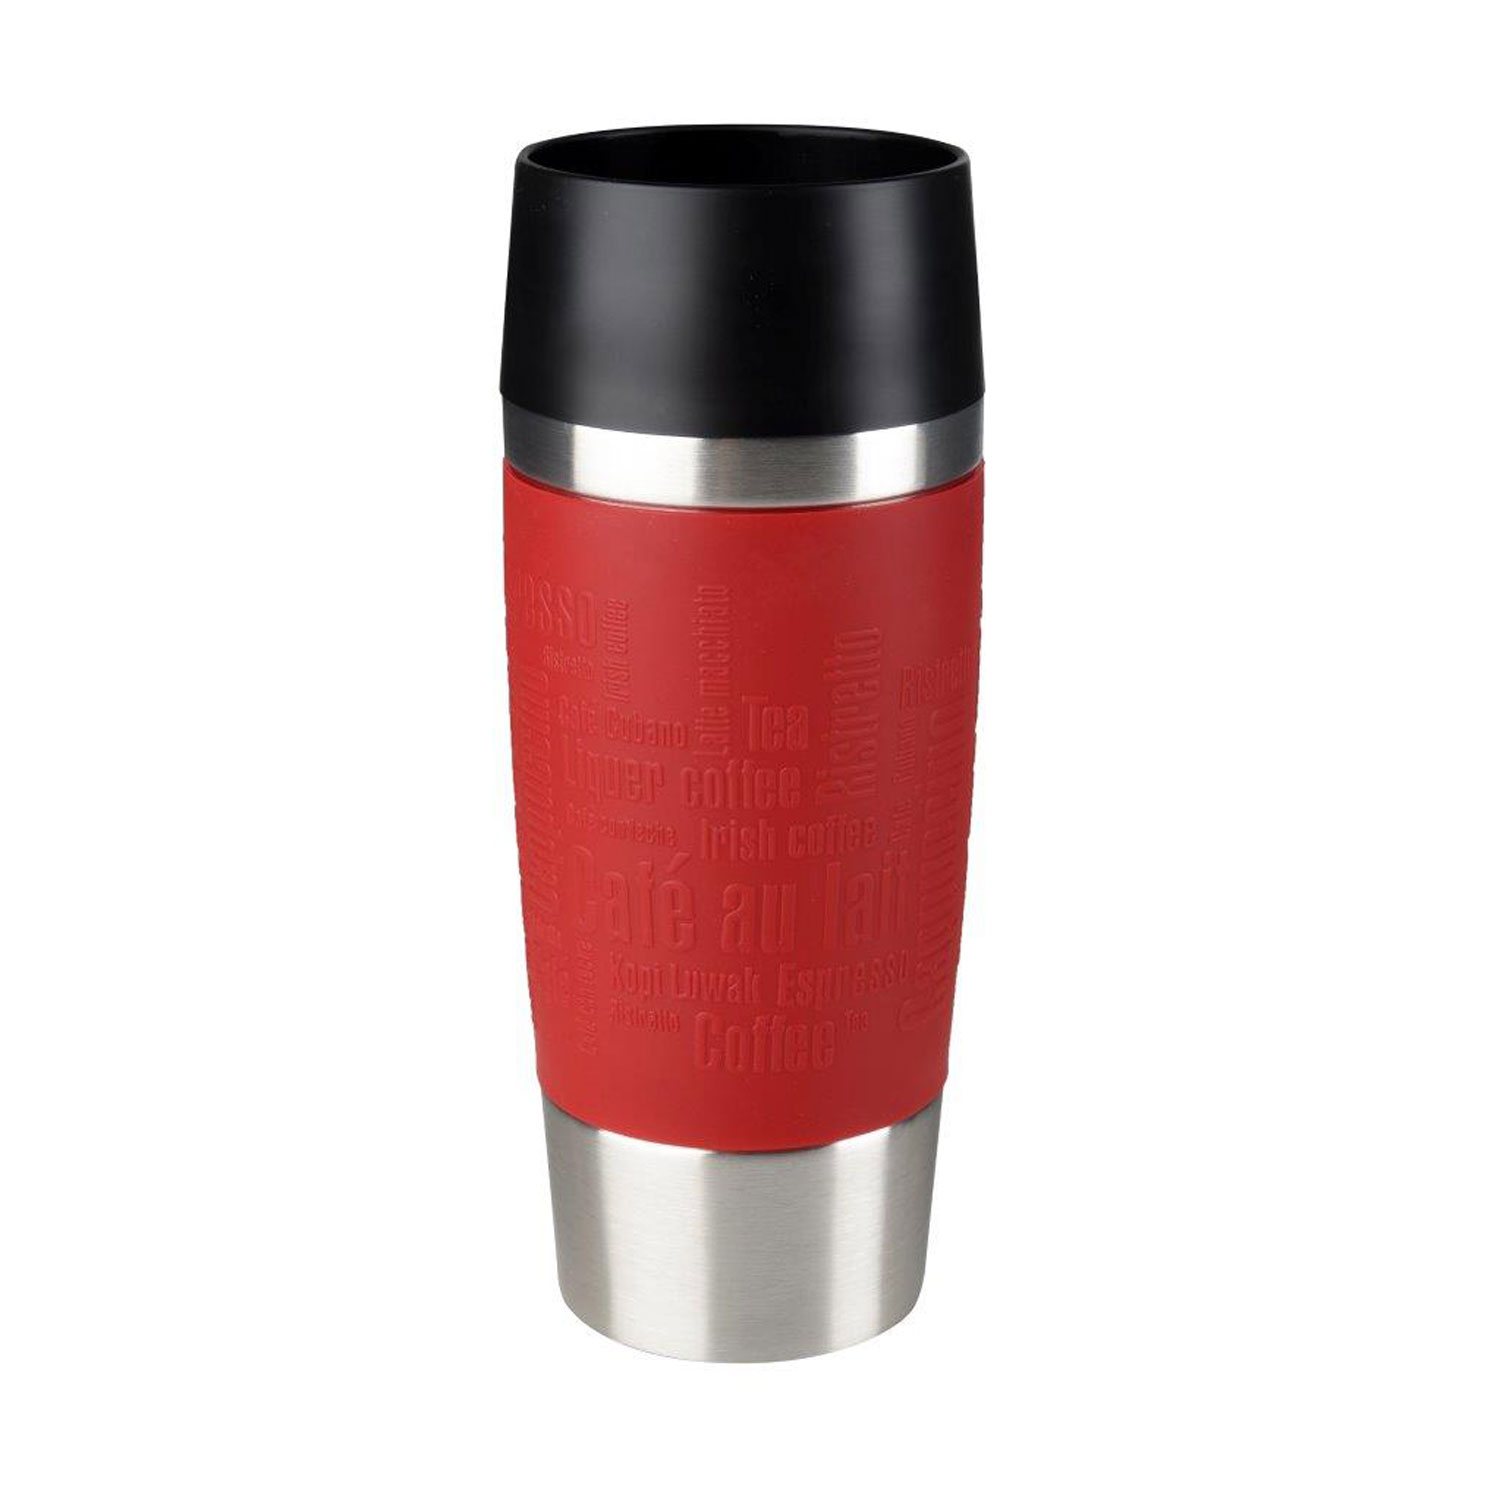 emsa thermobecher travel mug 0 36l in rot bei kodi kaufen. Black Bedroom Furniture Sets. Home Design Ideas